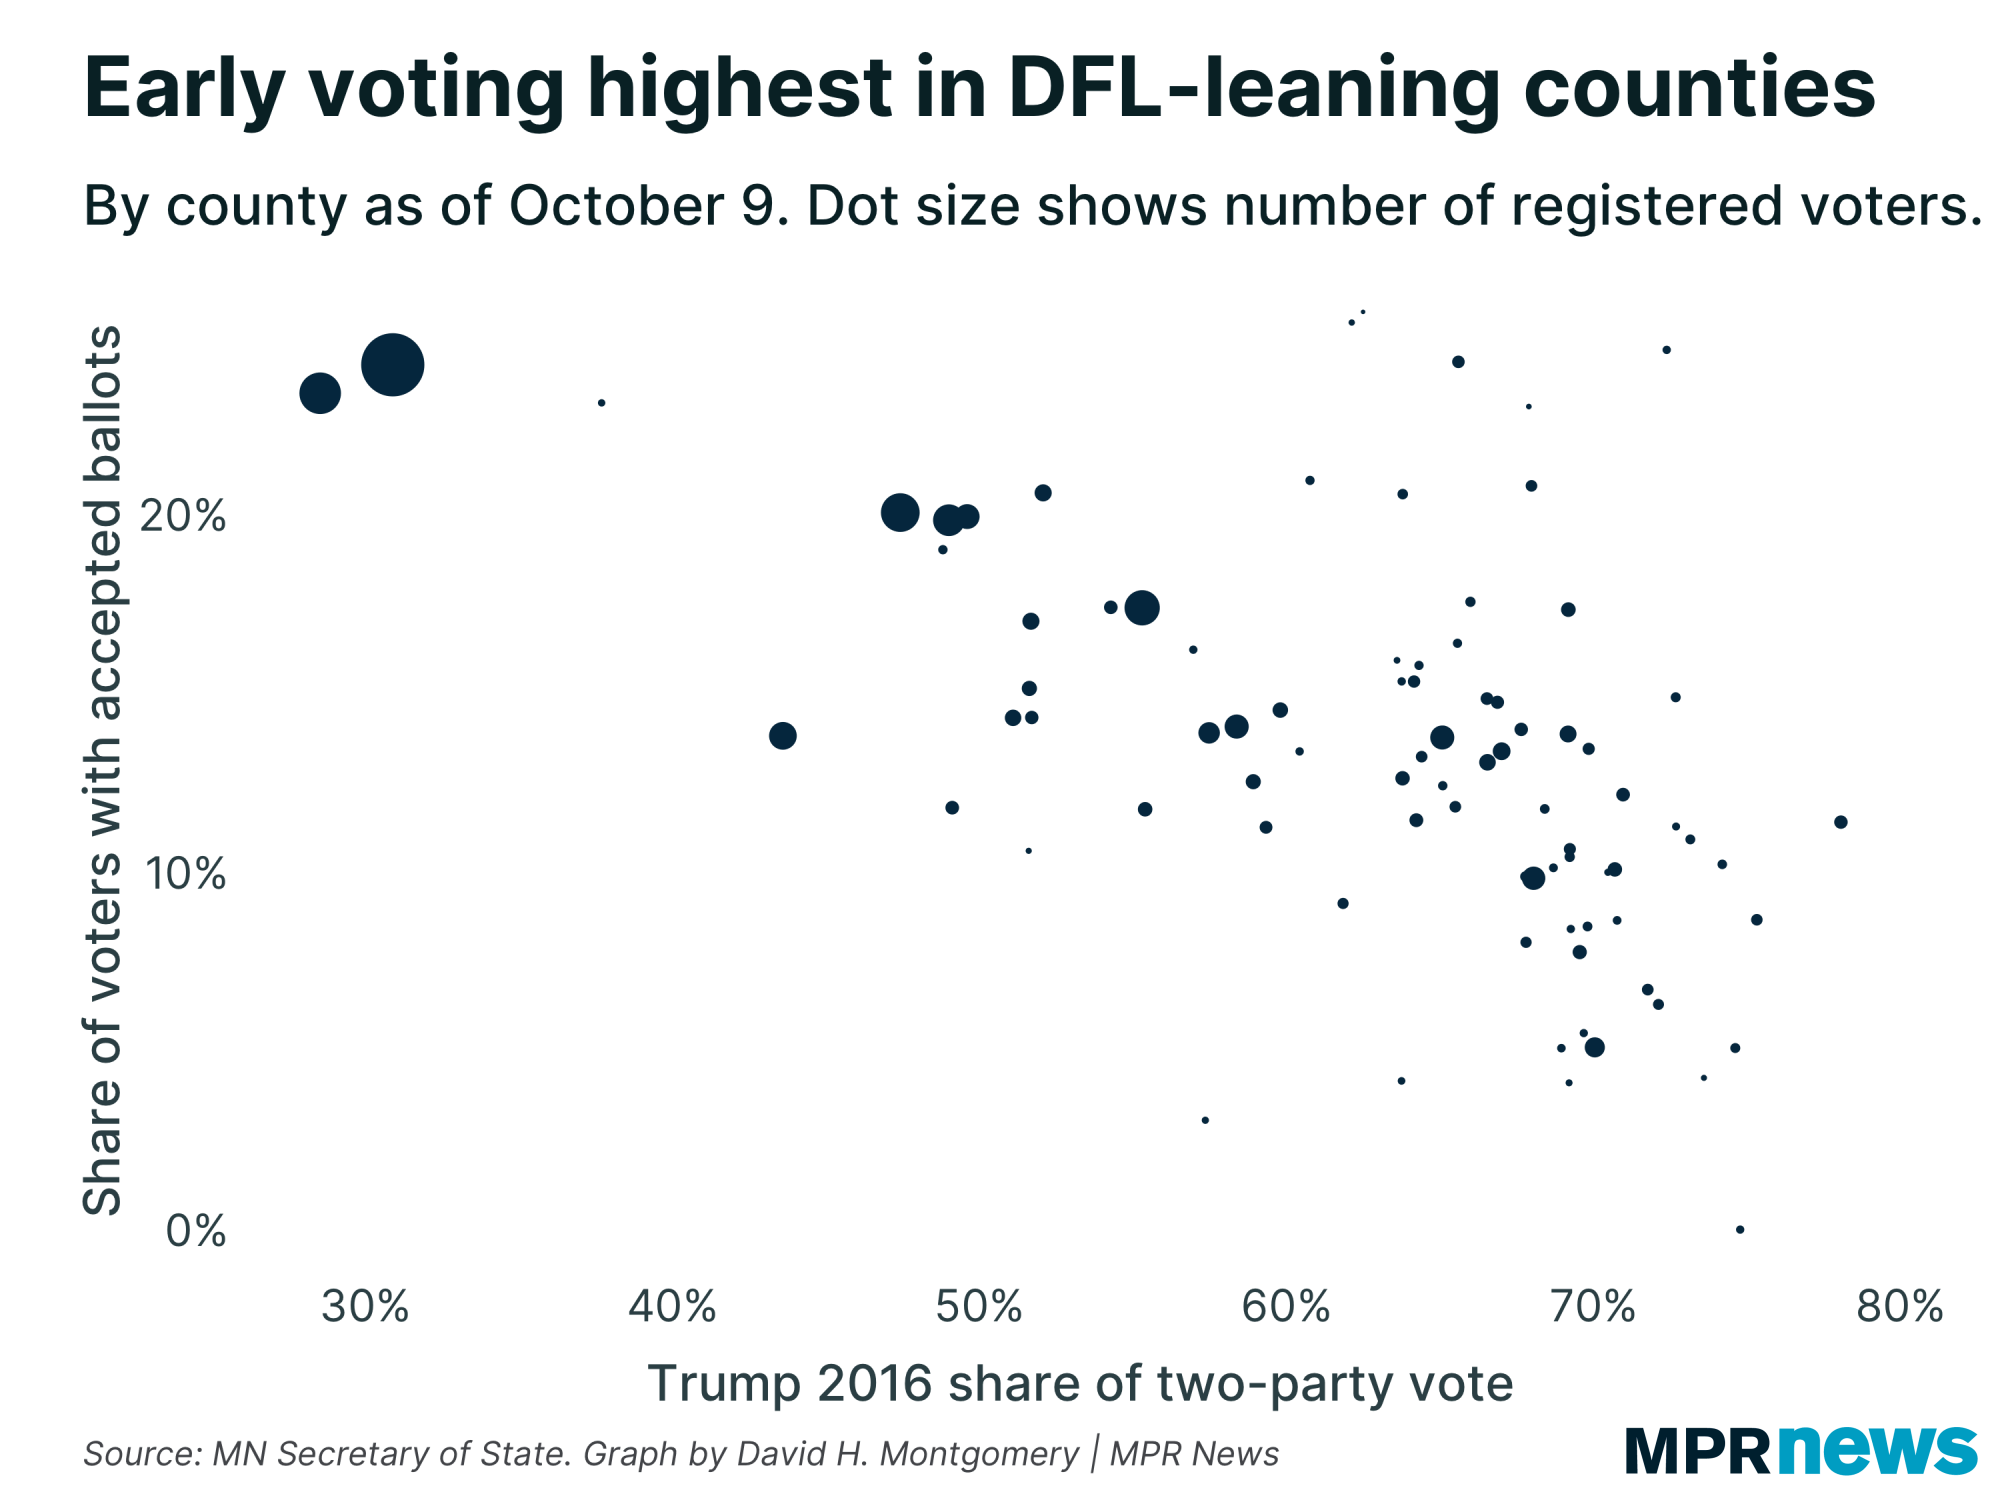 Early voting as of Oct. 9 by county, vs. Donald Trump's 2016 vote share